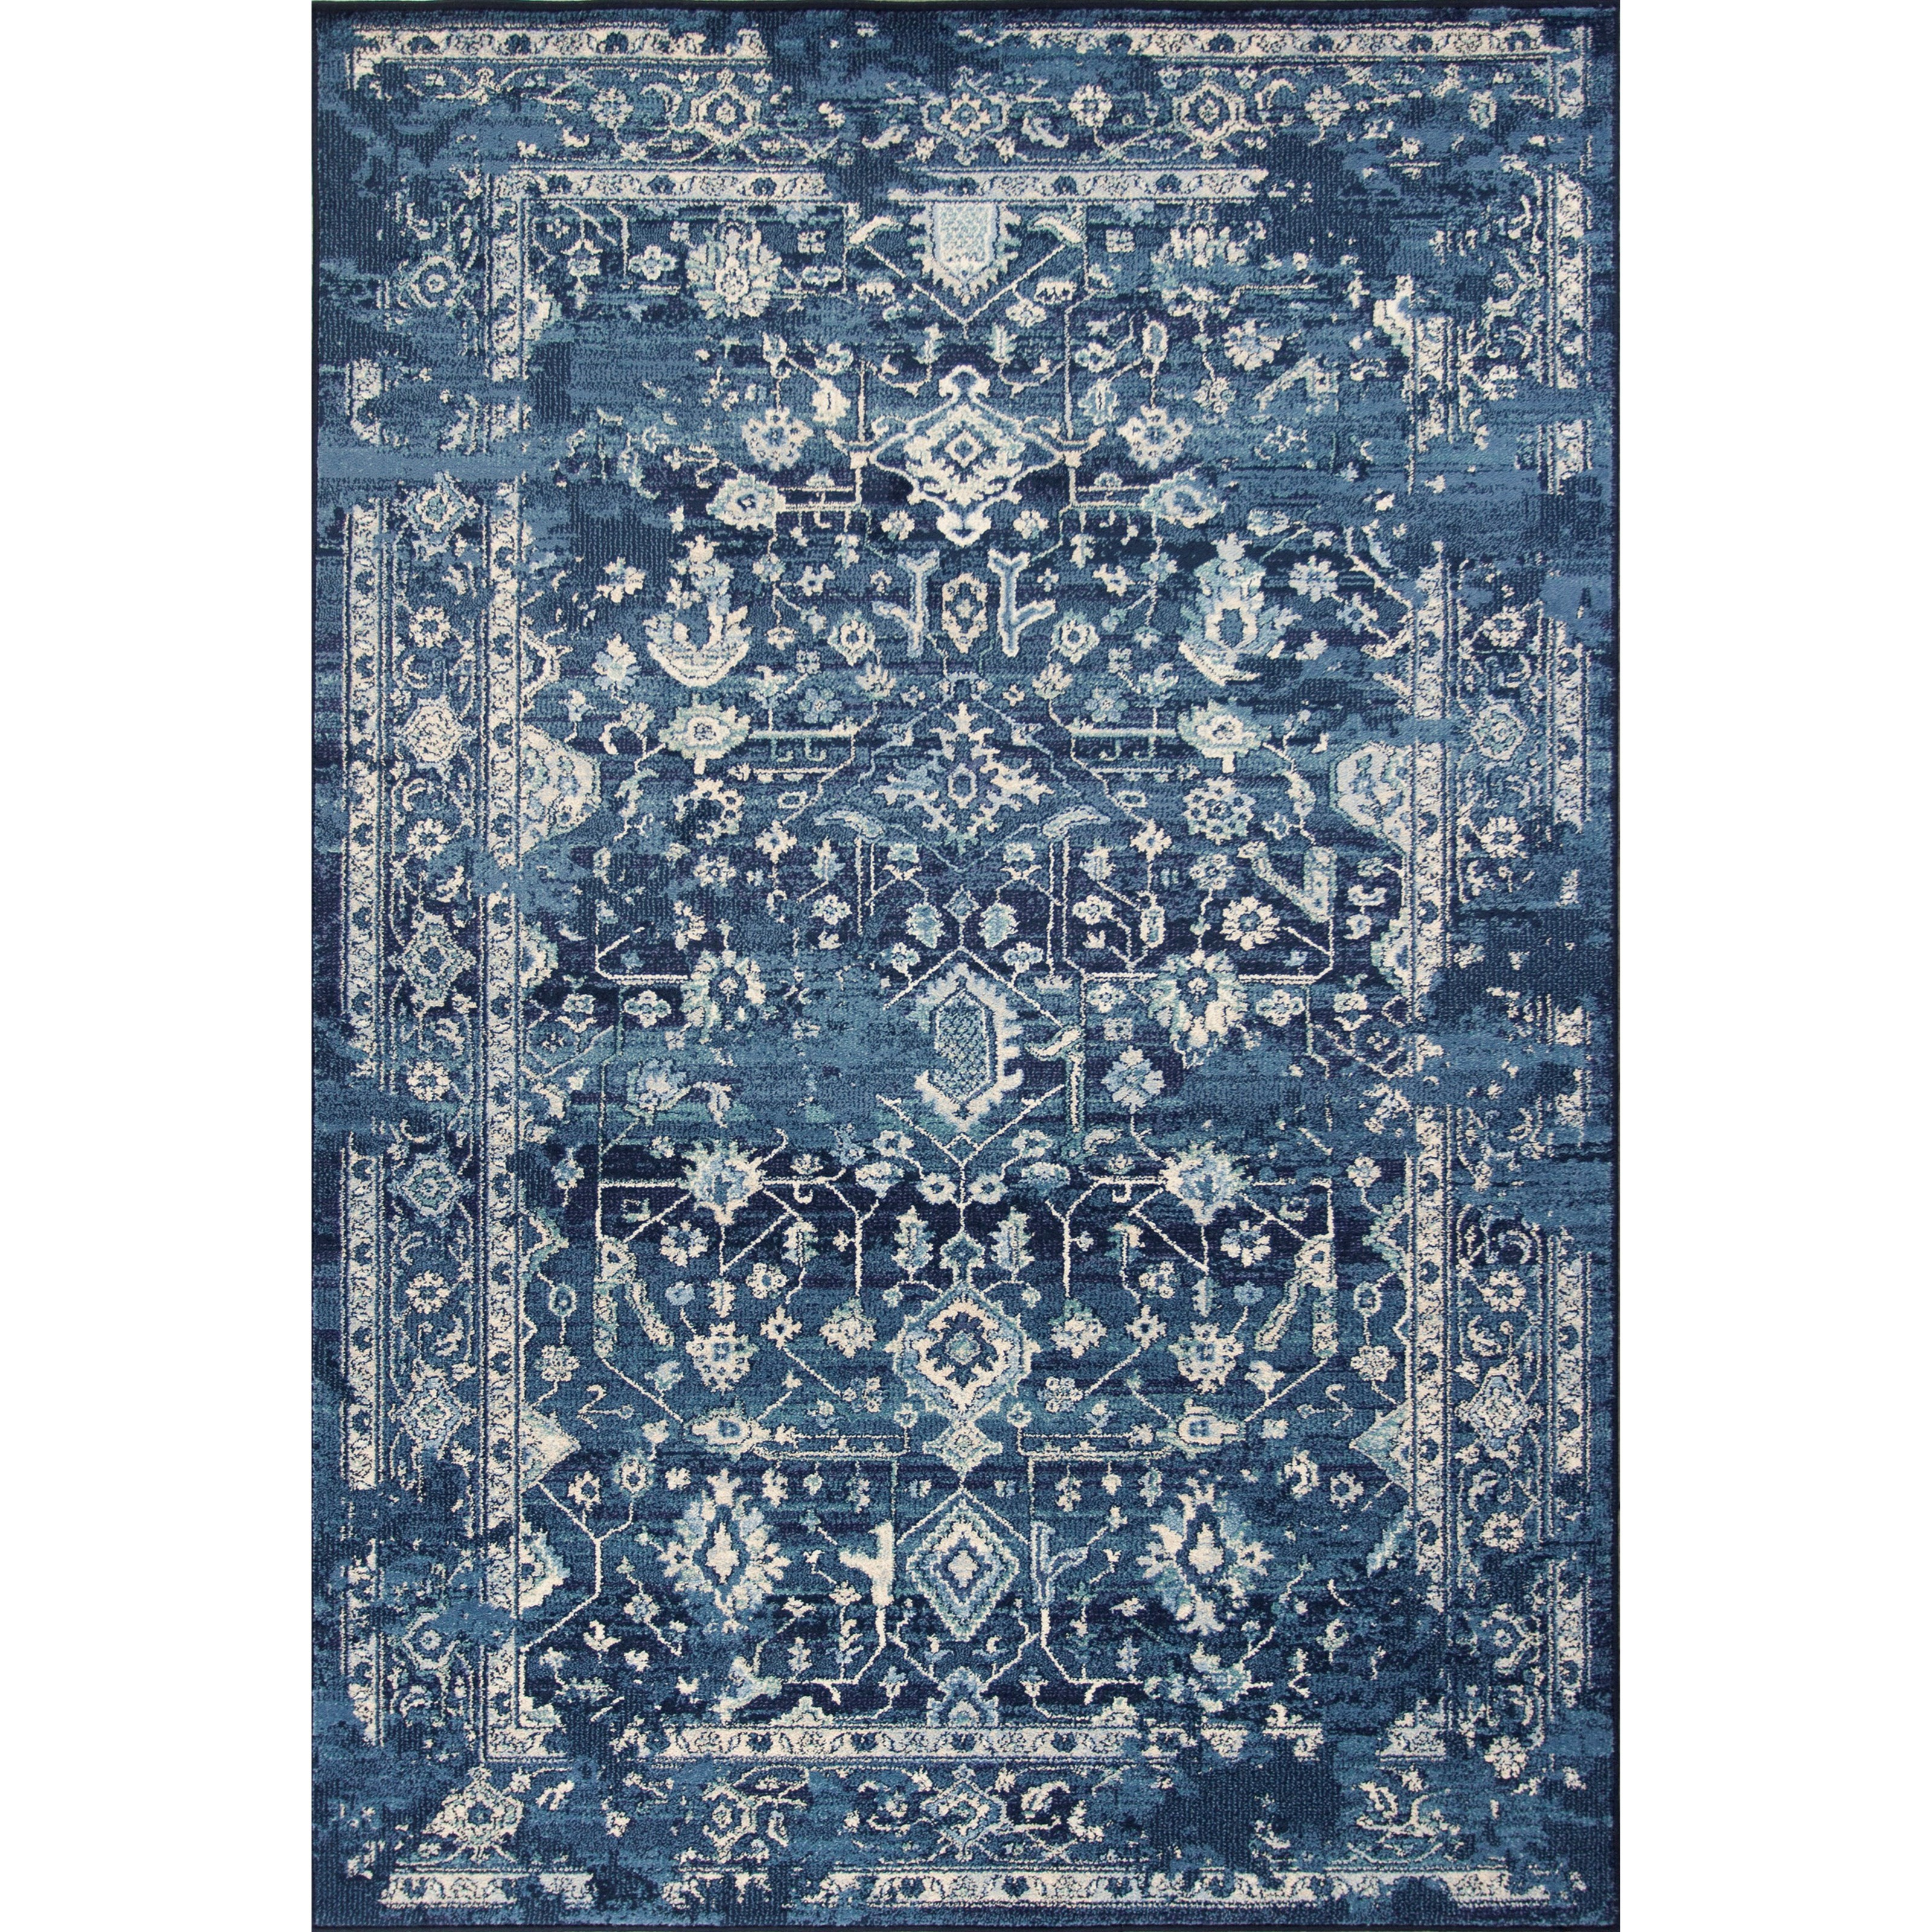 "Bob Mackie Home Vintage 3'3"" X 4'11"" Azure Blue Marrakesh Area Rug by Kas at Zak's Home"